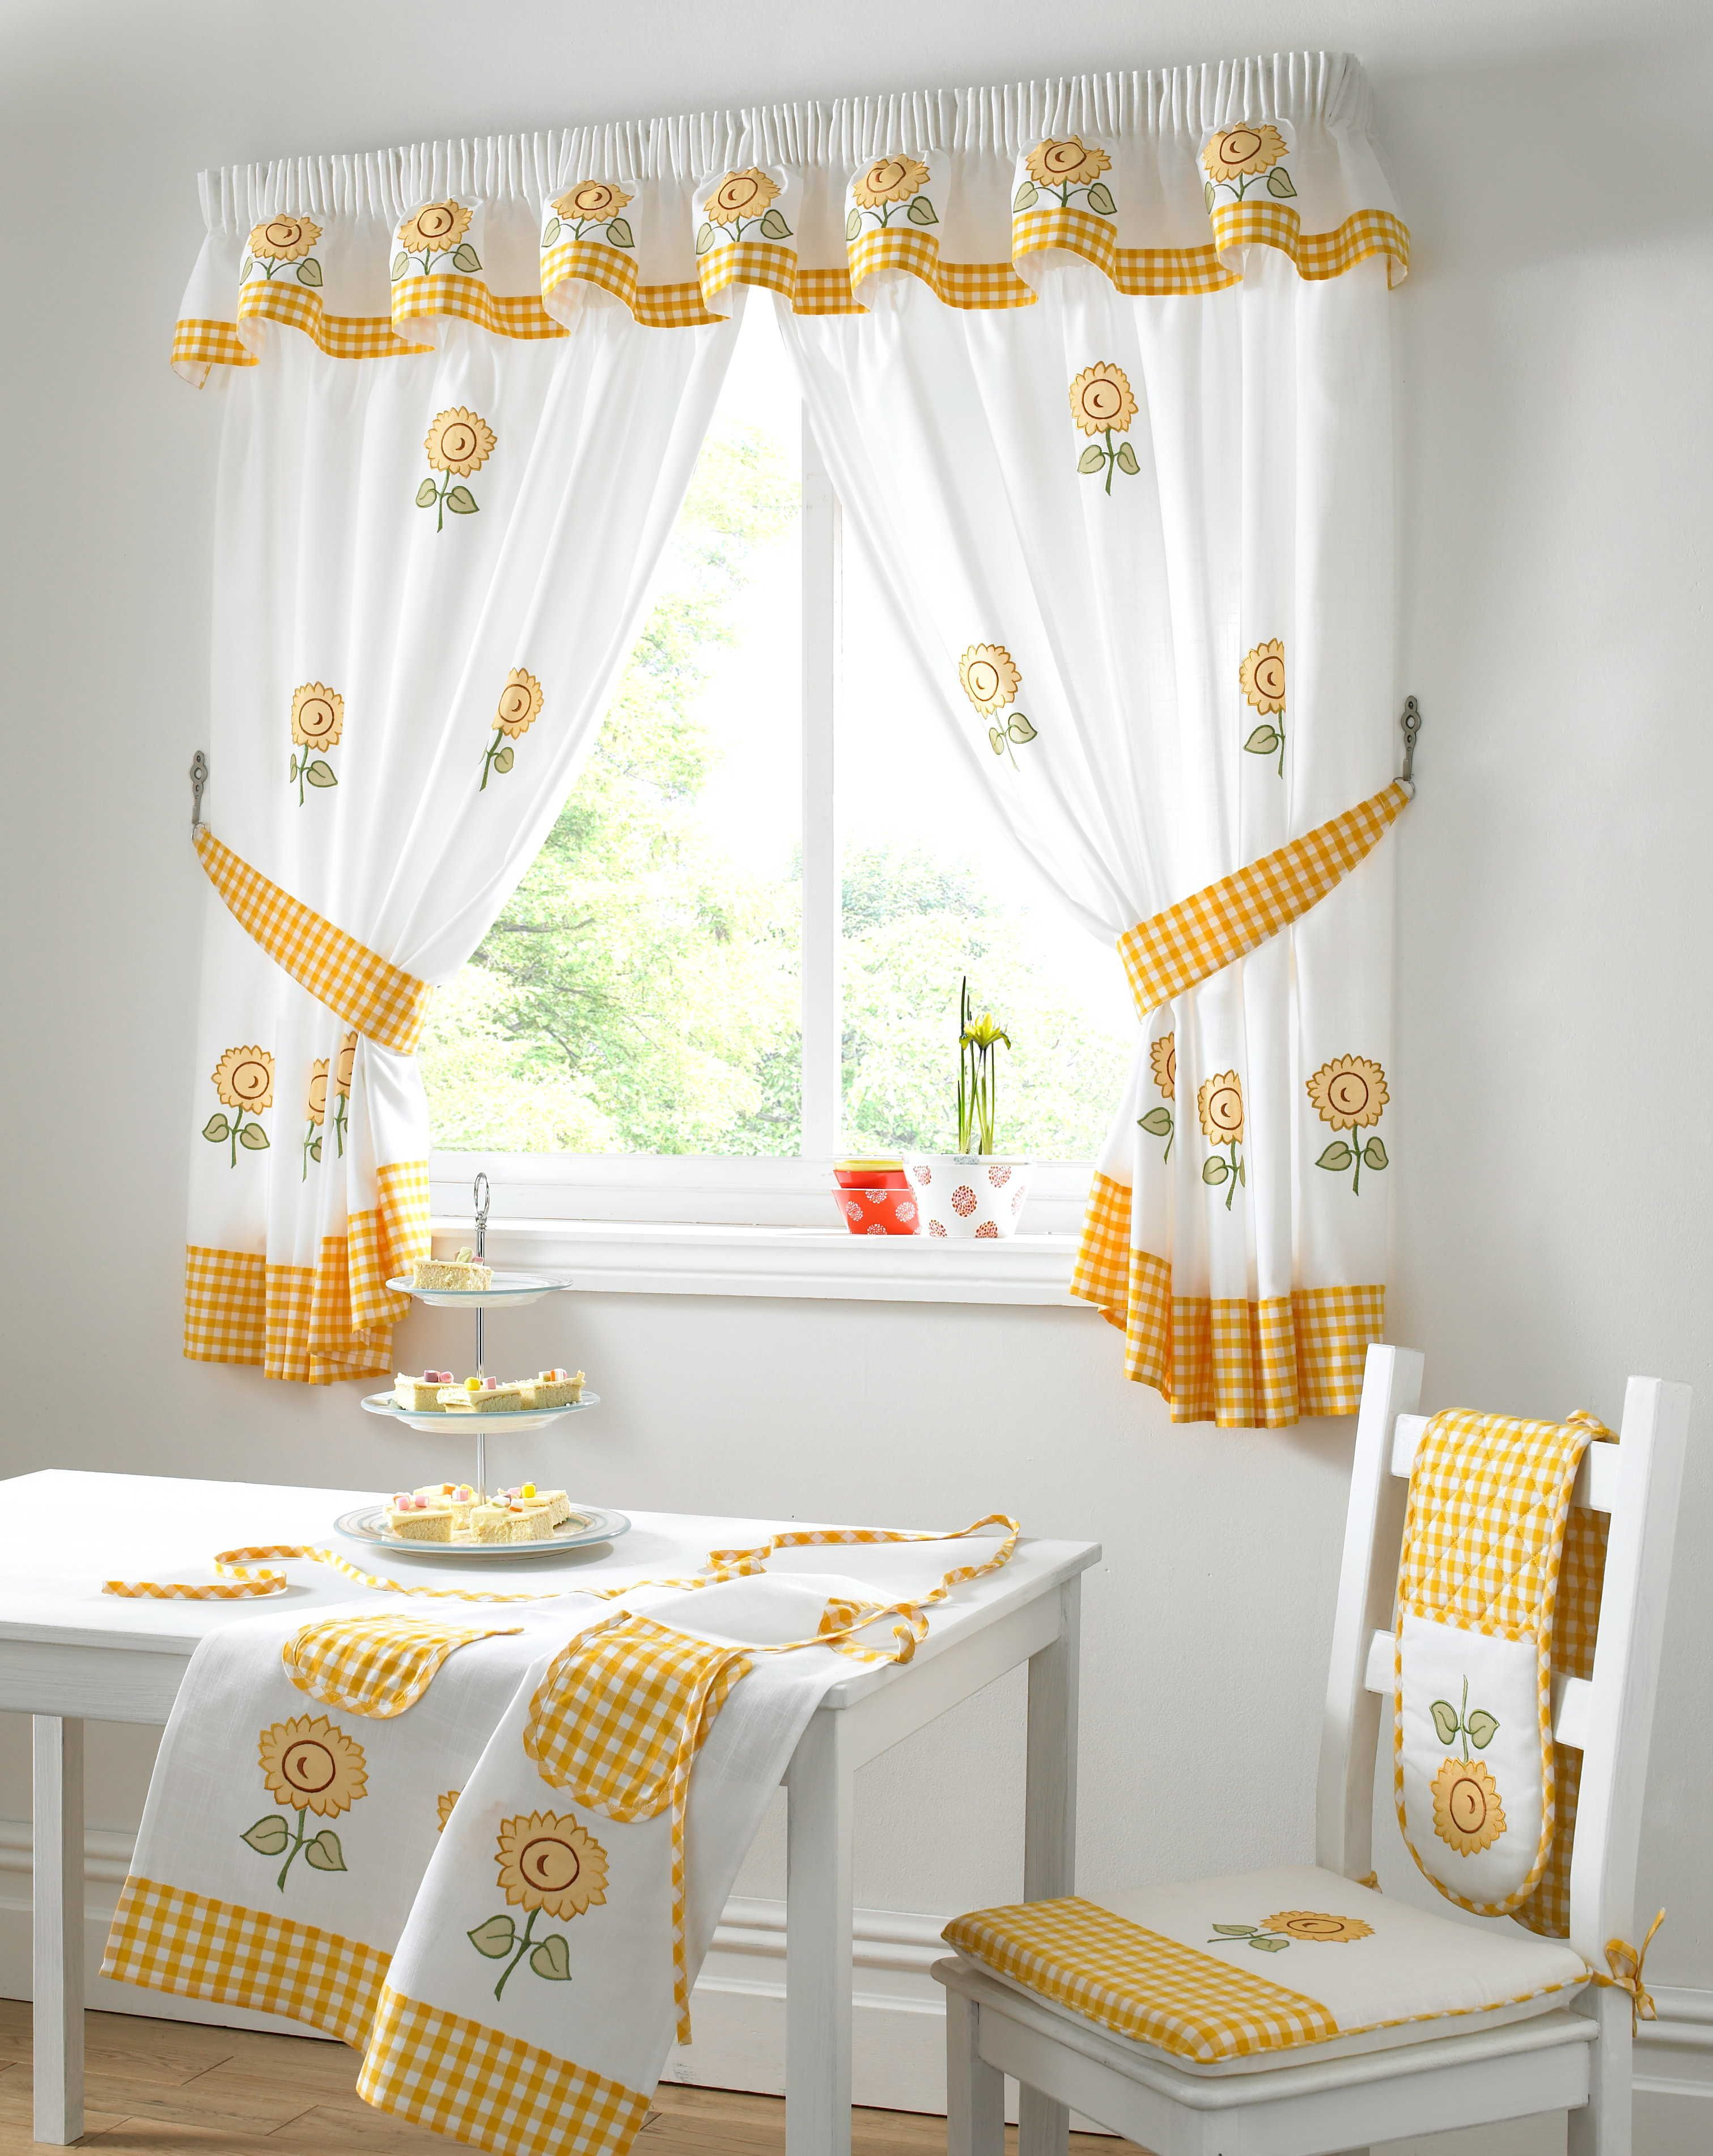 Adorable Design Of The Kitchen Curtains Ideas With White And Yellow ...